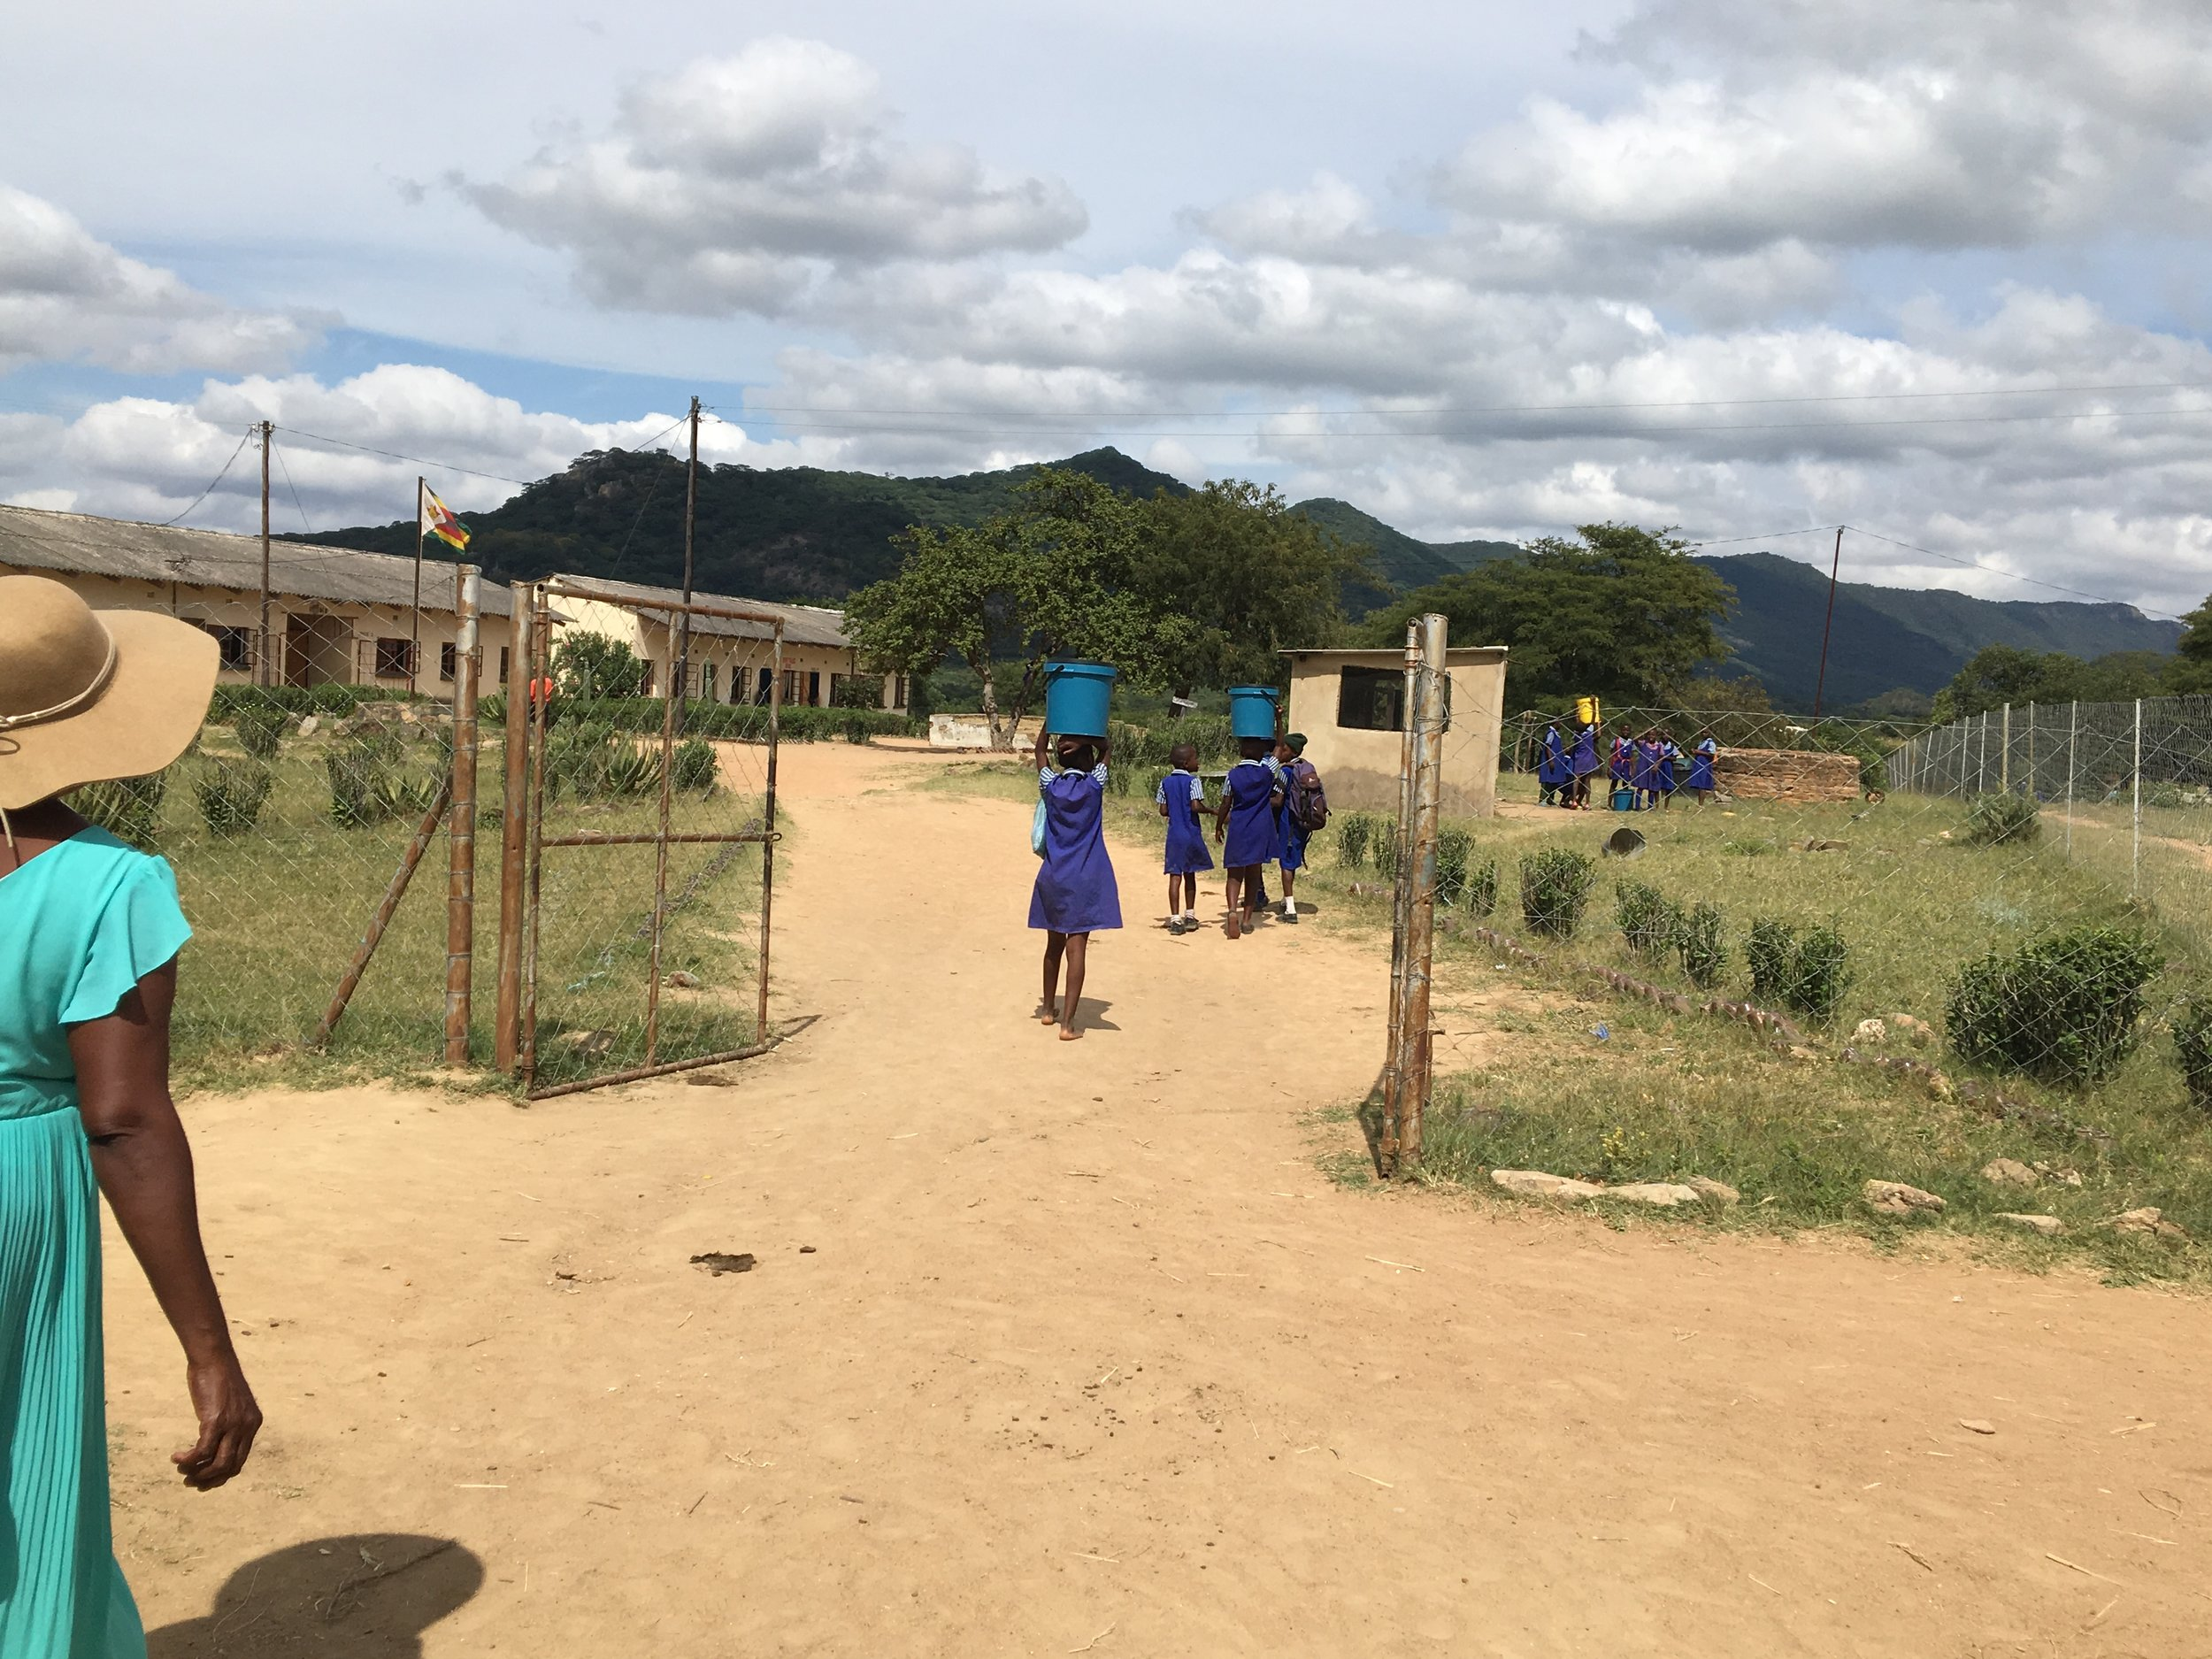 CARRYING WATER FOR THE SCHOOL CHICKENS….  THAT'S RIGHT! CHAMATUTU PRIMARY SCHOOL HAS ITS OWN CHICKENS!